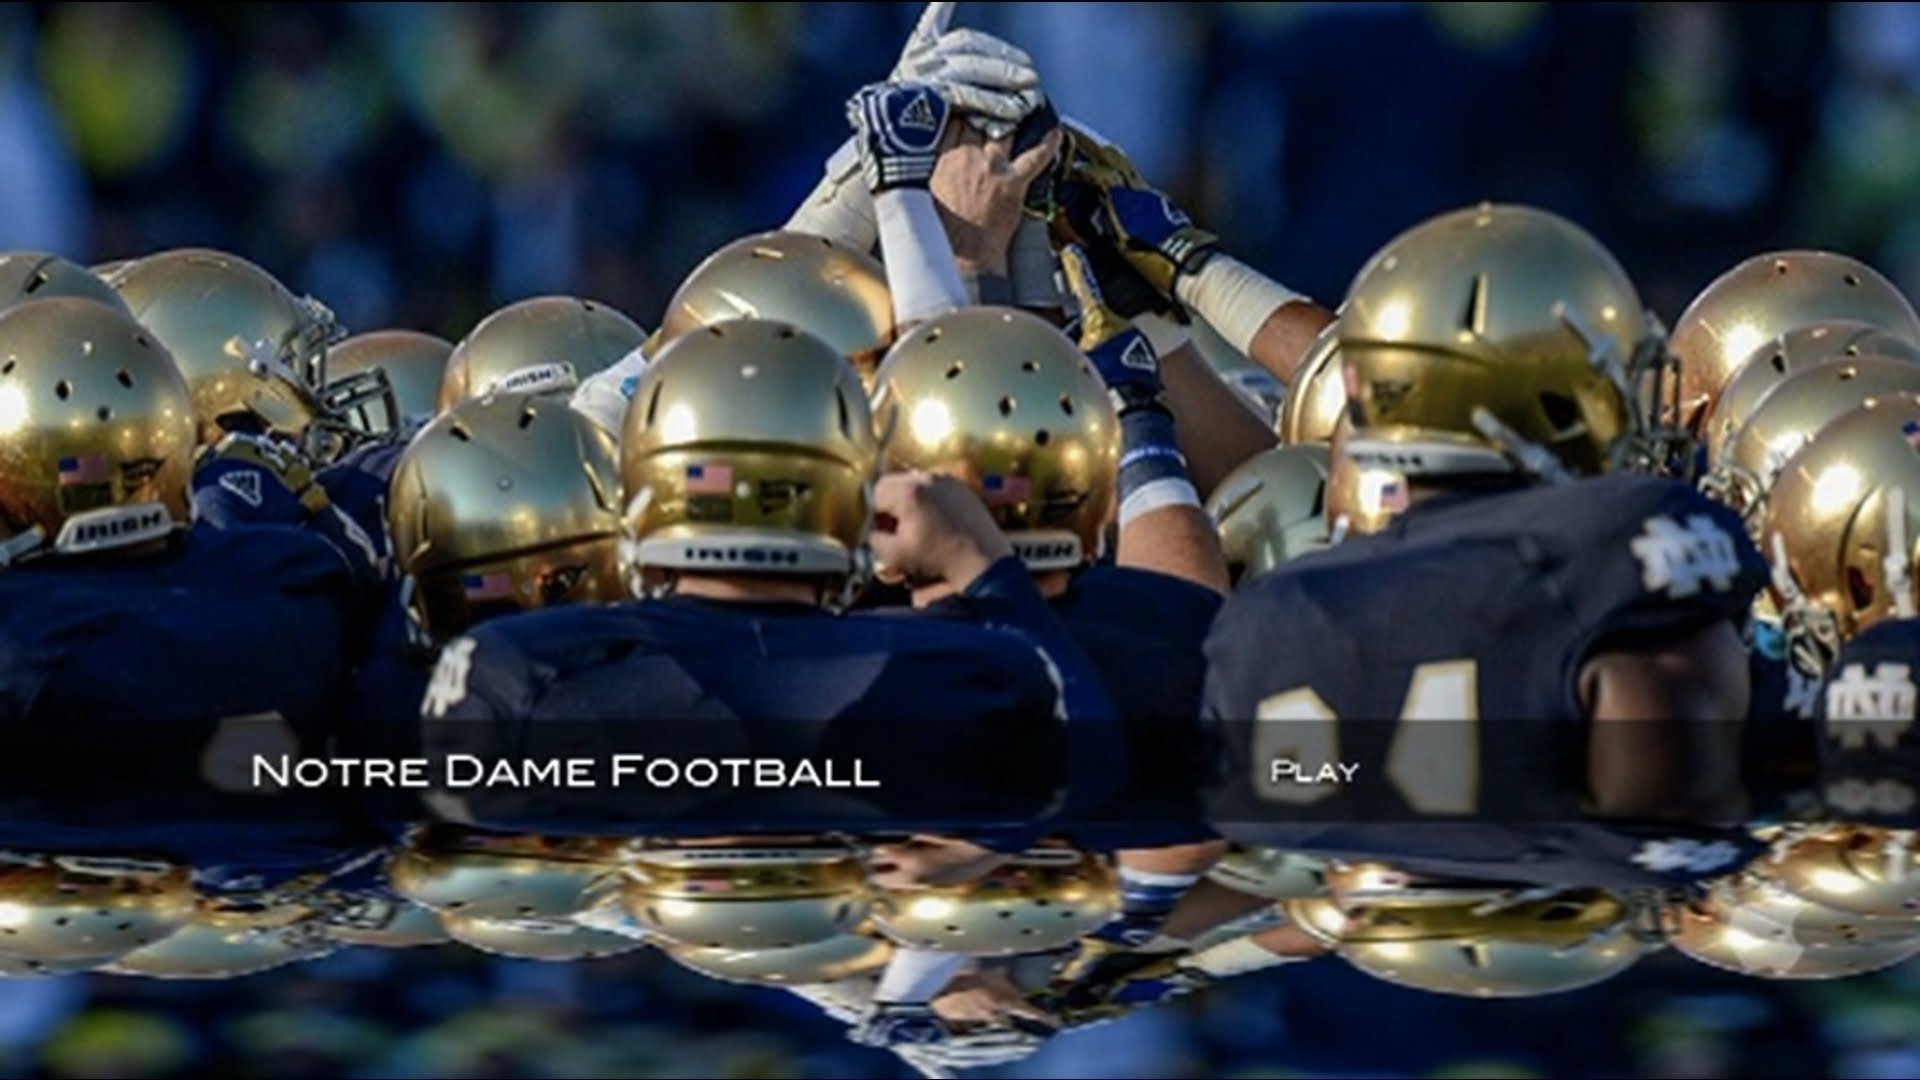 Notre Dame Football Desktop Wallpaper